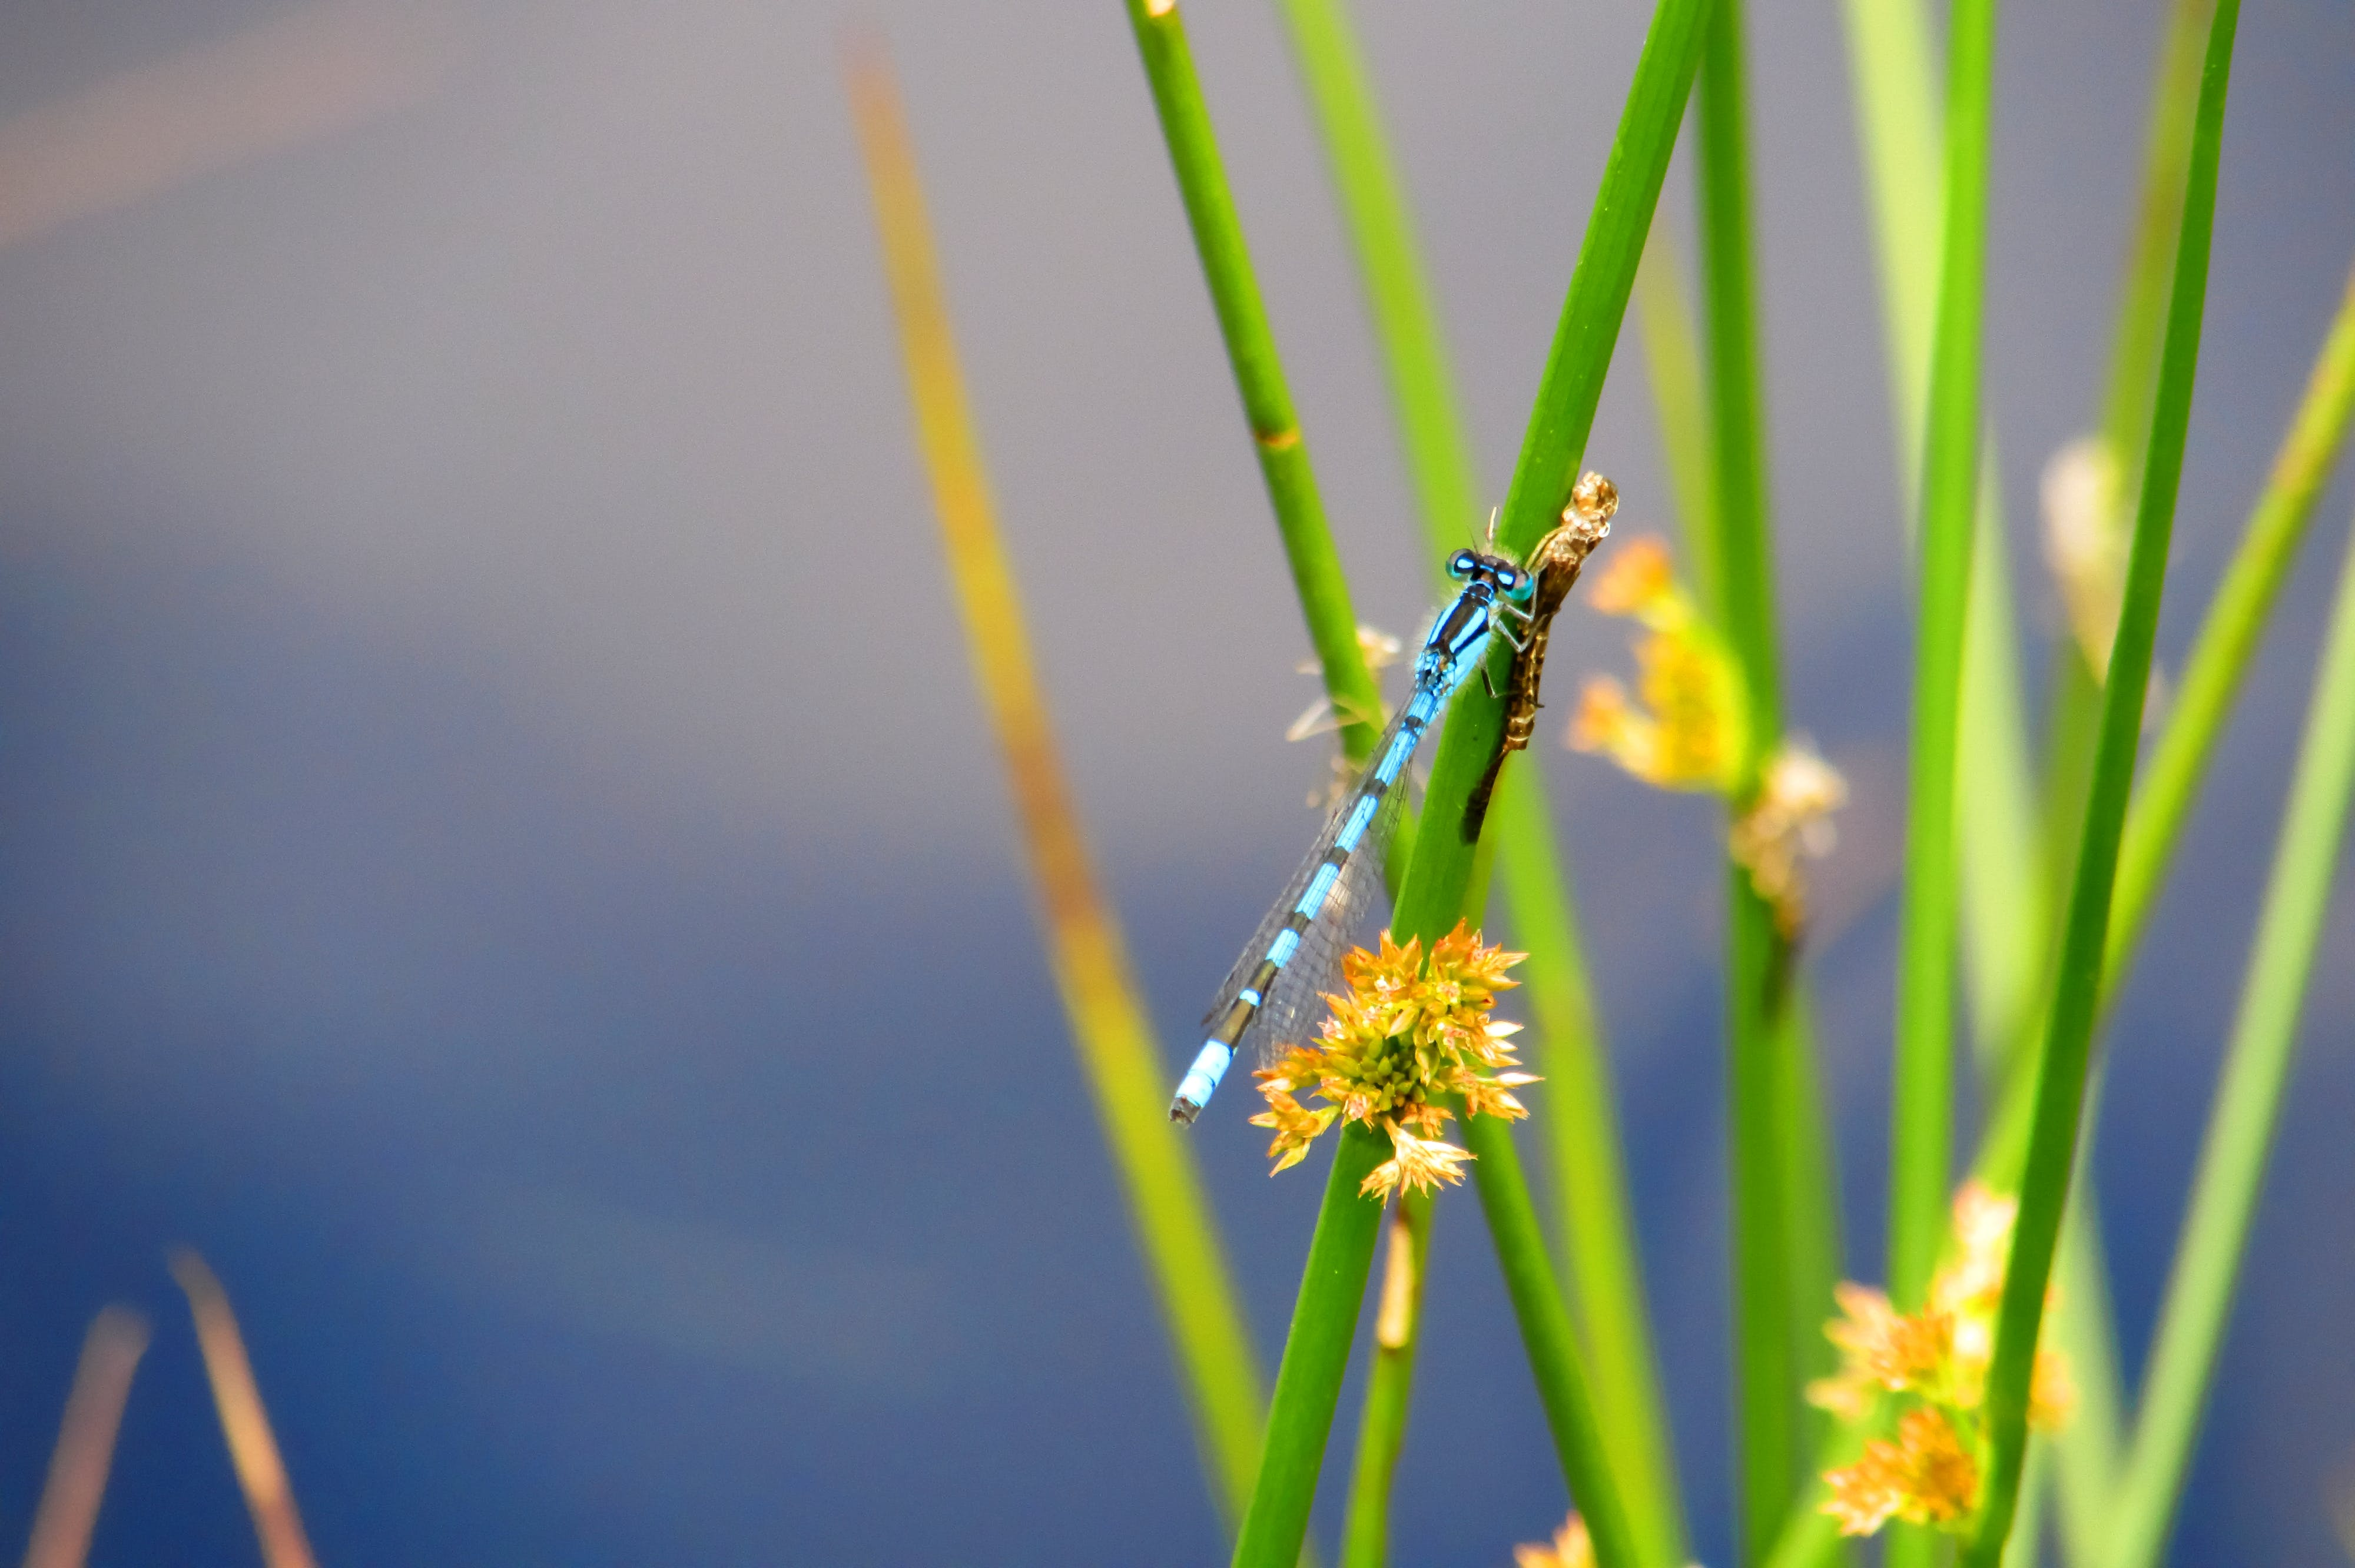 Selective Focus Photography of Damsel Fly on Green Leaf